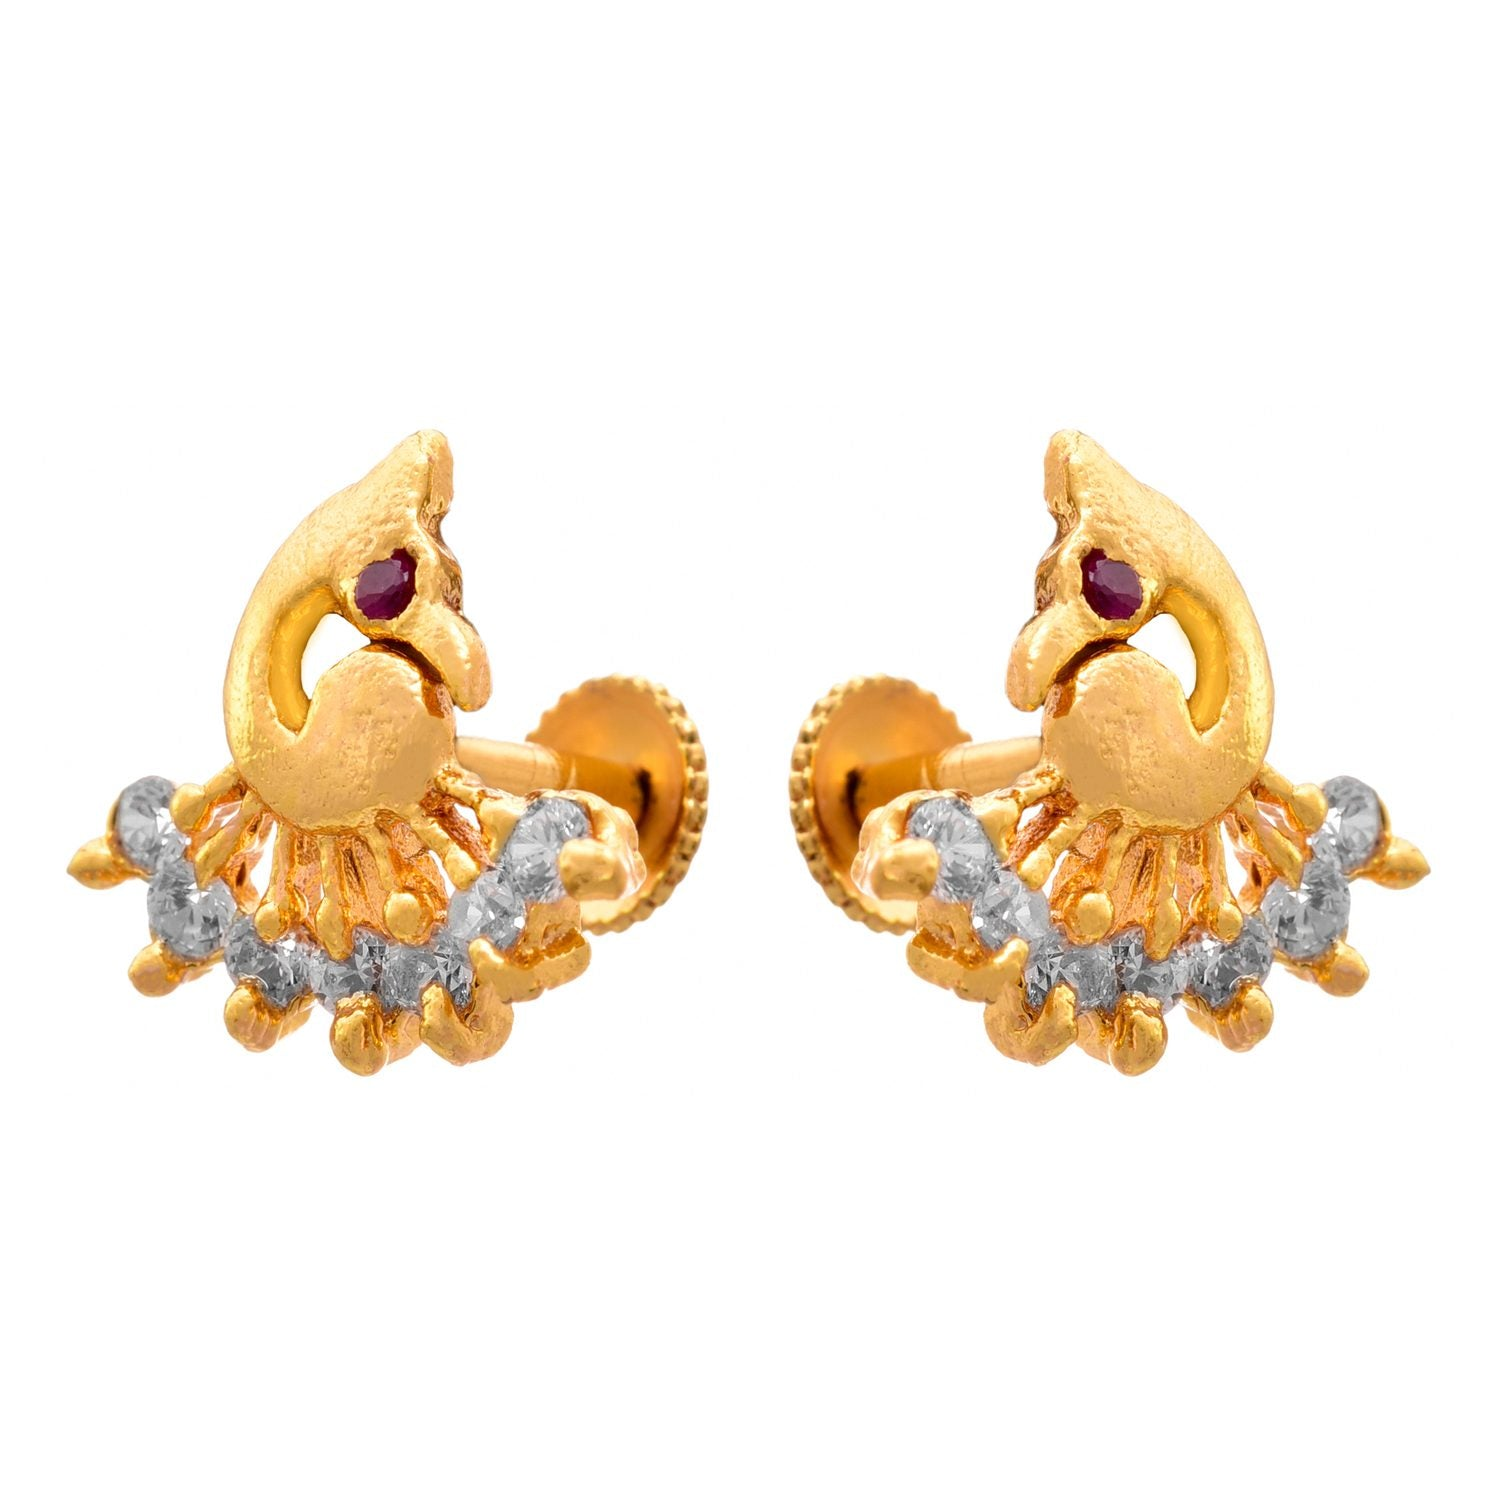 JFL- Traditional Ethnic One Gram Gold Plated Diamond Designer Stud Earrings for Women & Girls.